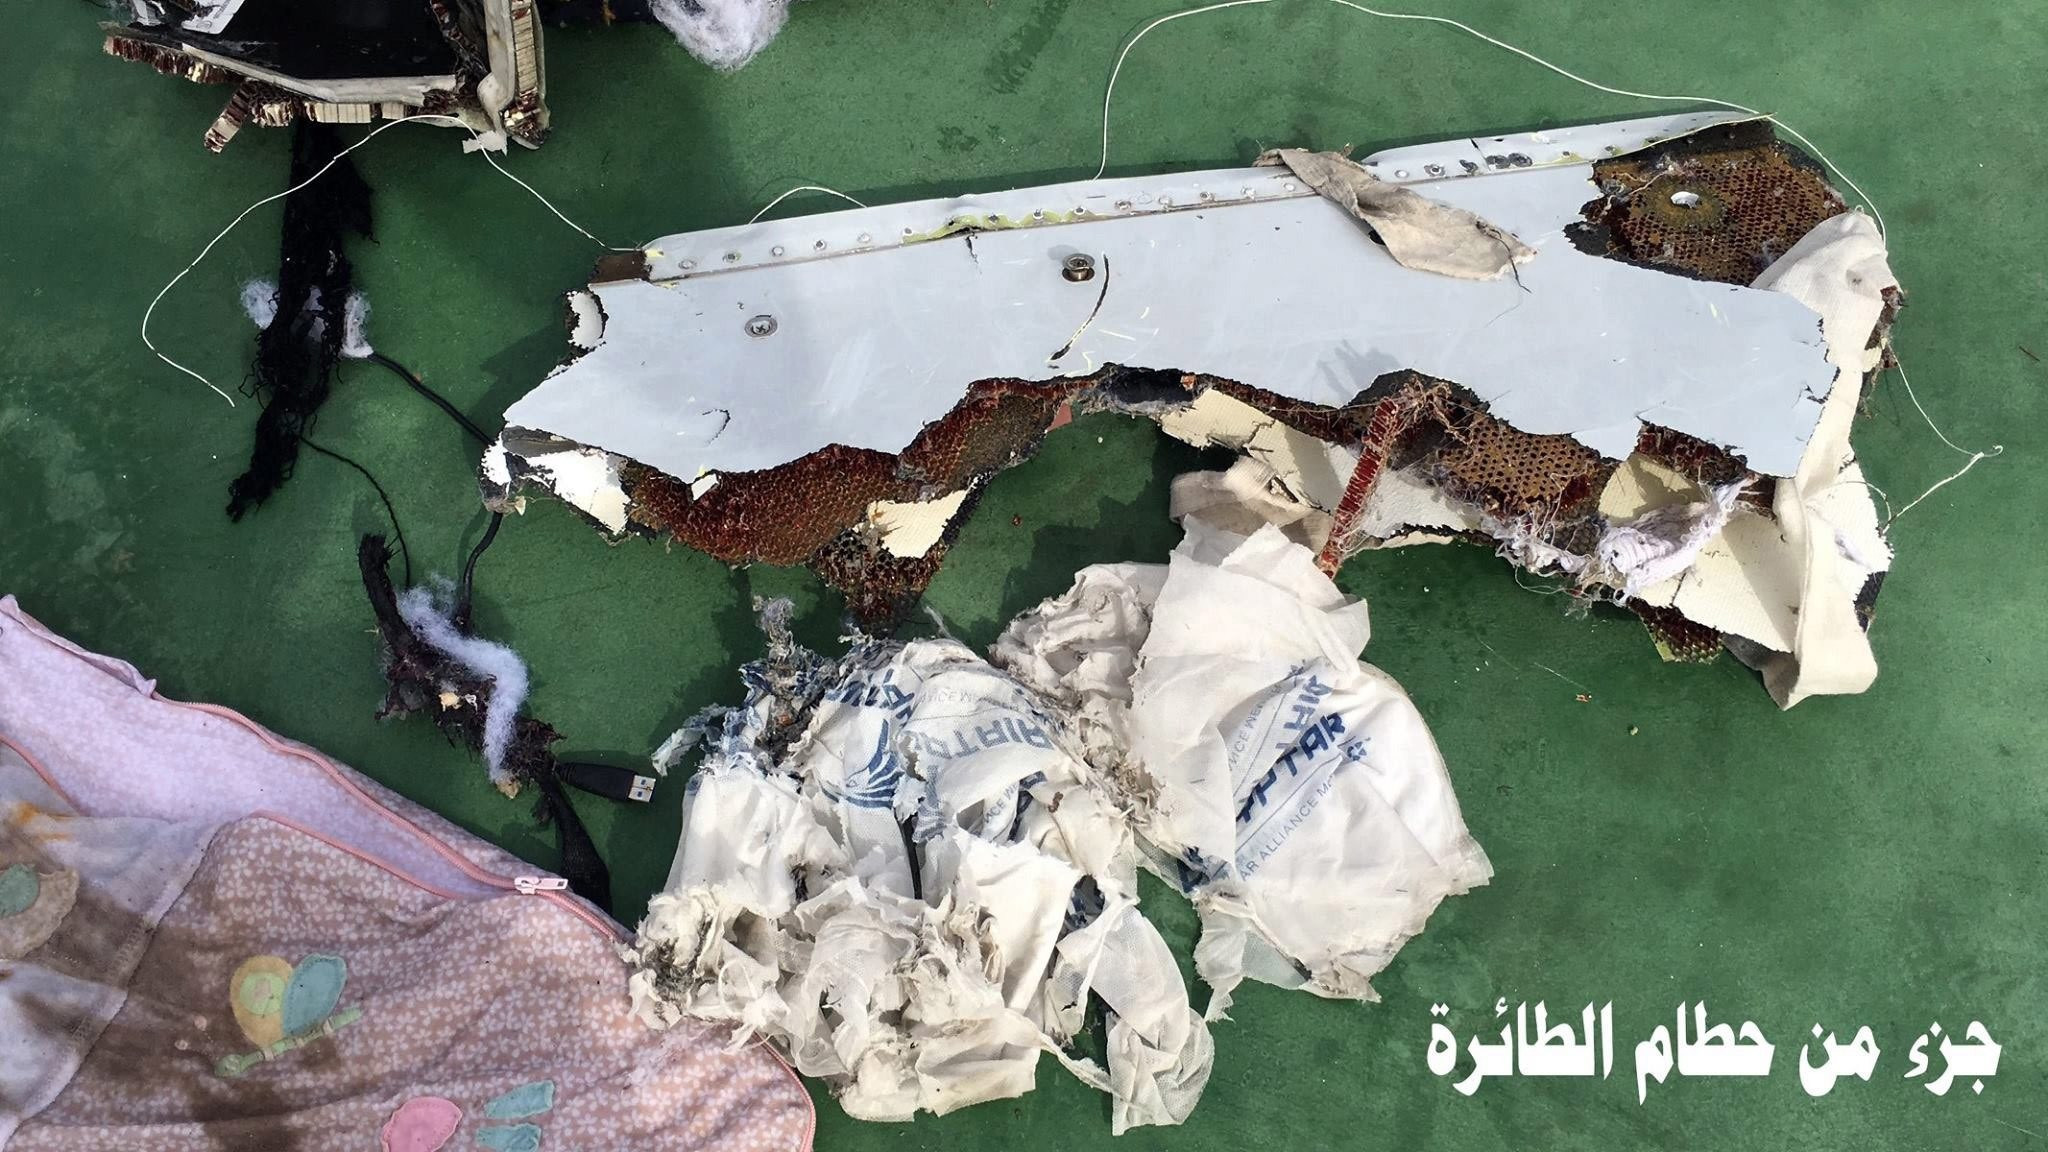 Pieces of a chair from the EgyptAir MS804 flight missing at sea, unspecified location in Egypt.